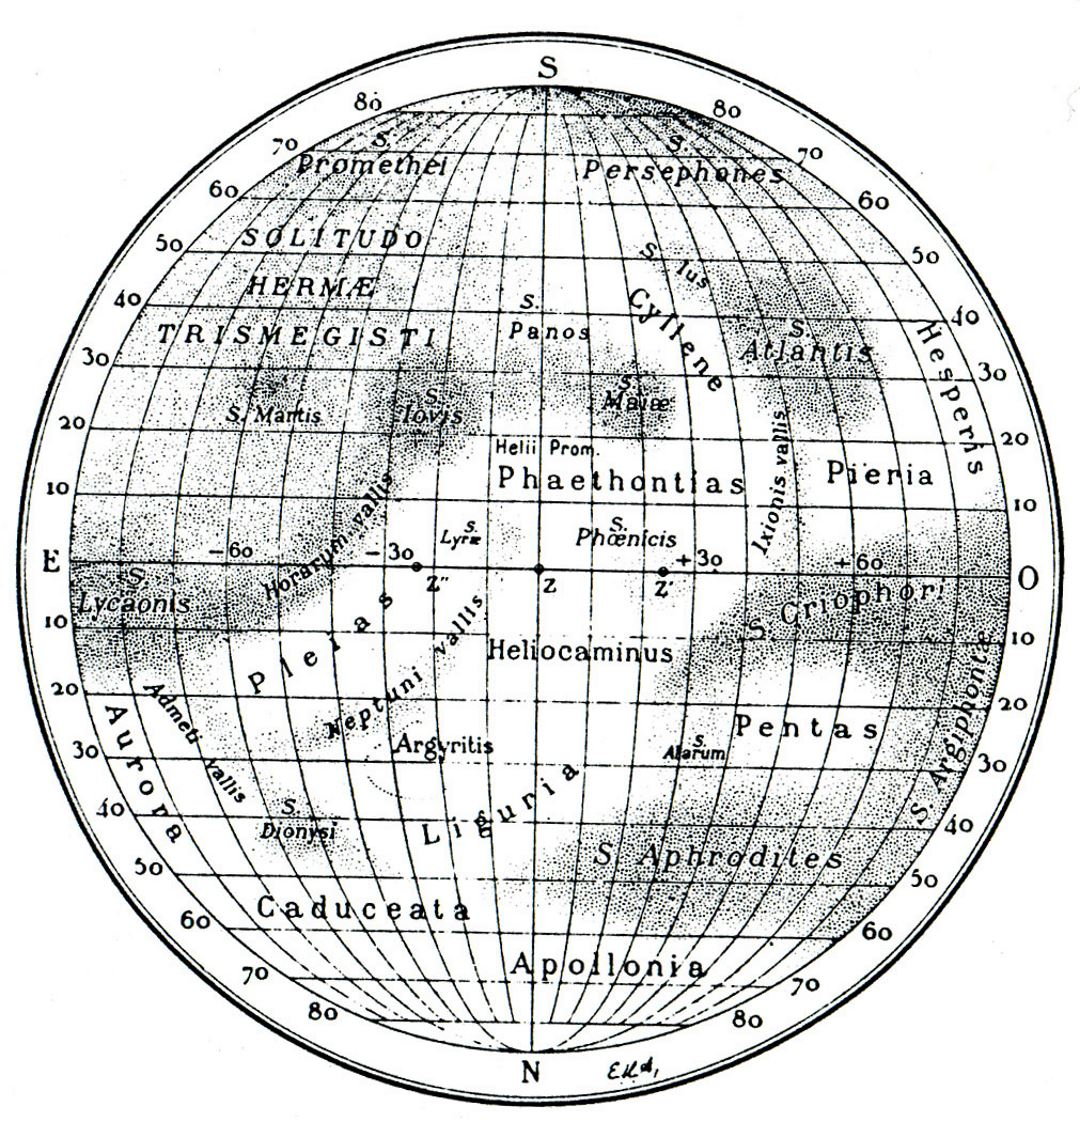 Detailed old map of Mercury - 1934